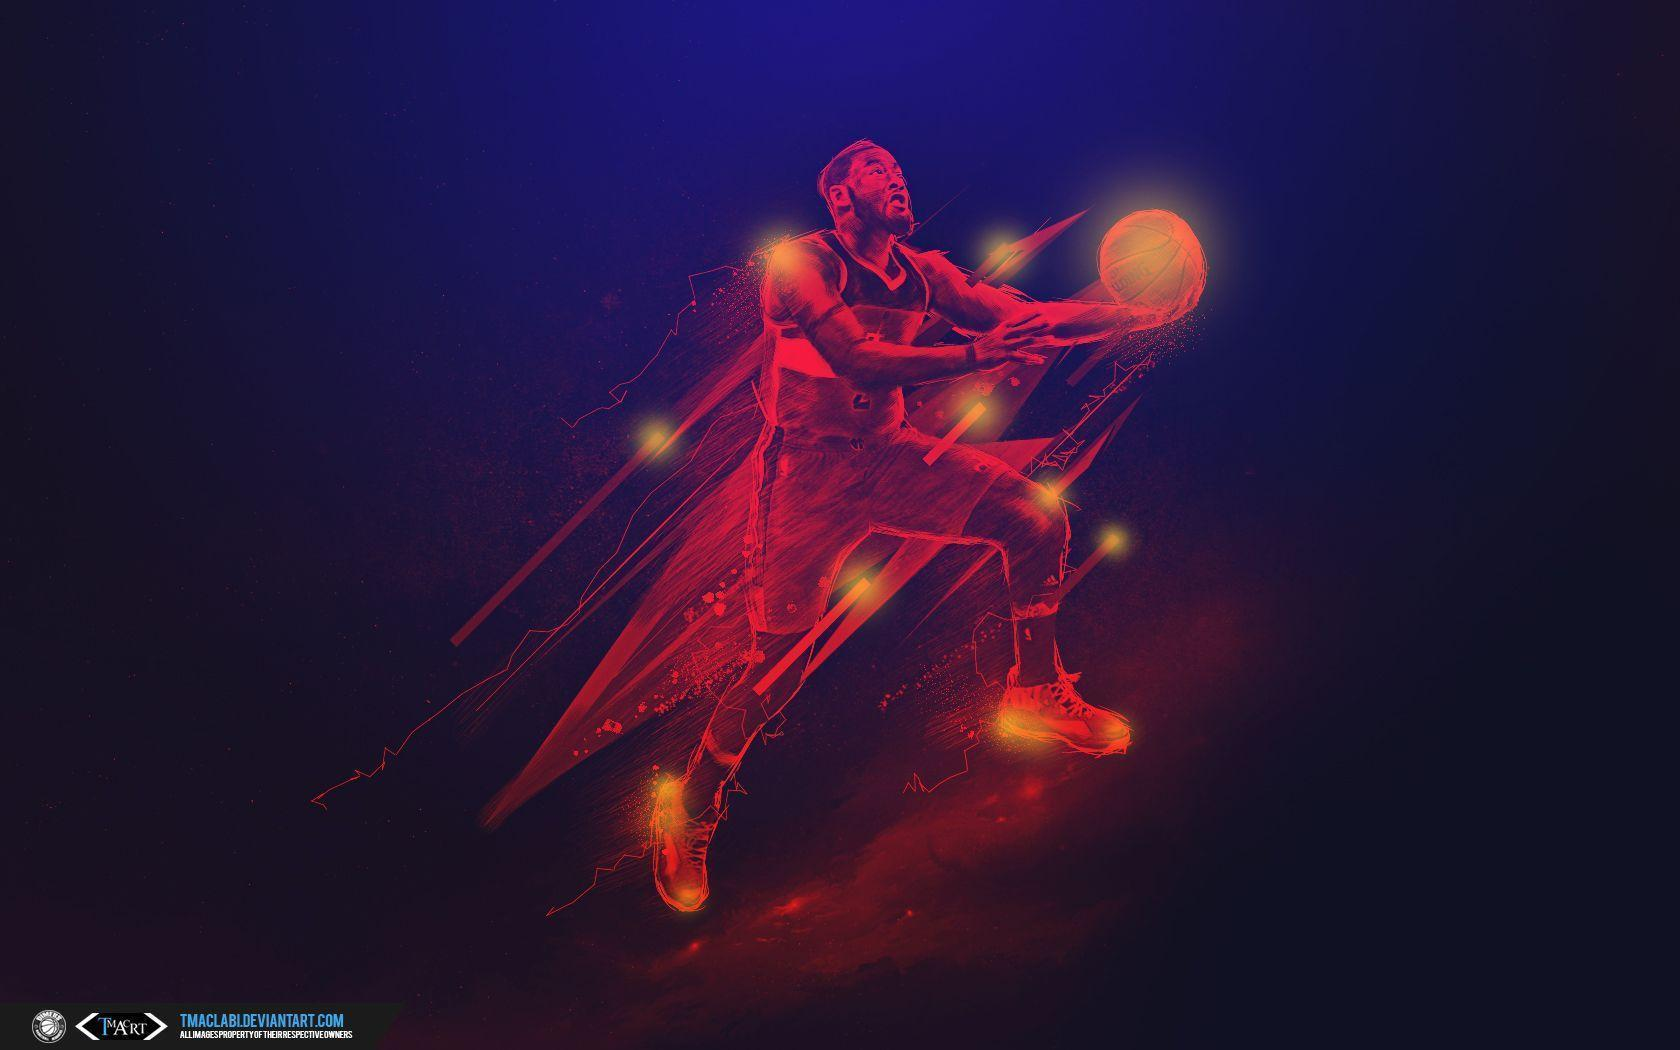 John Wall Dynamic Wallpaper by tmaclabi on DeviantArt